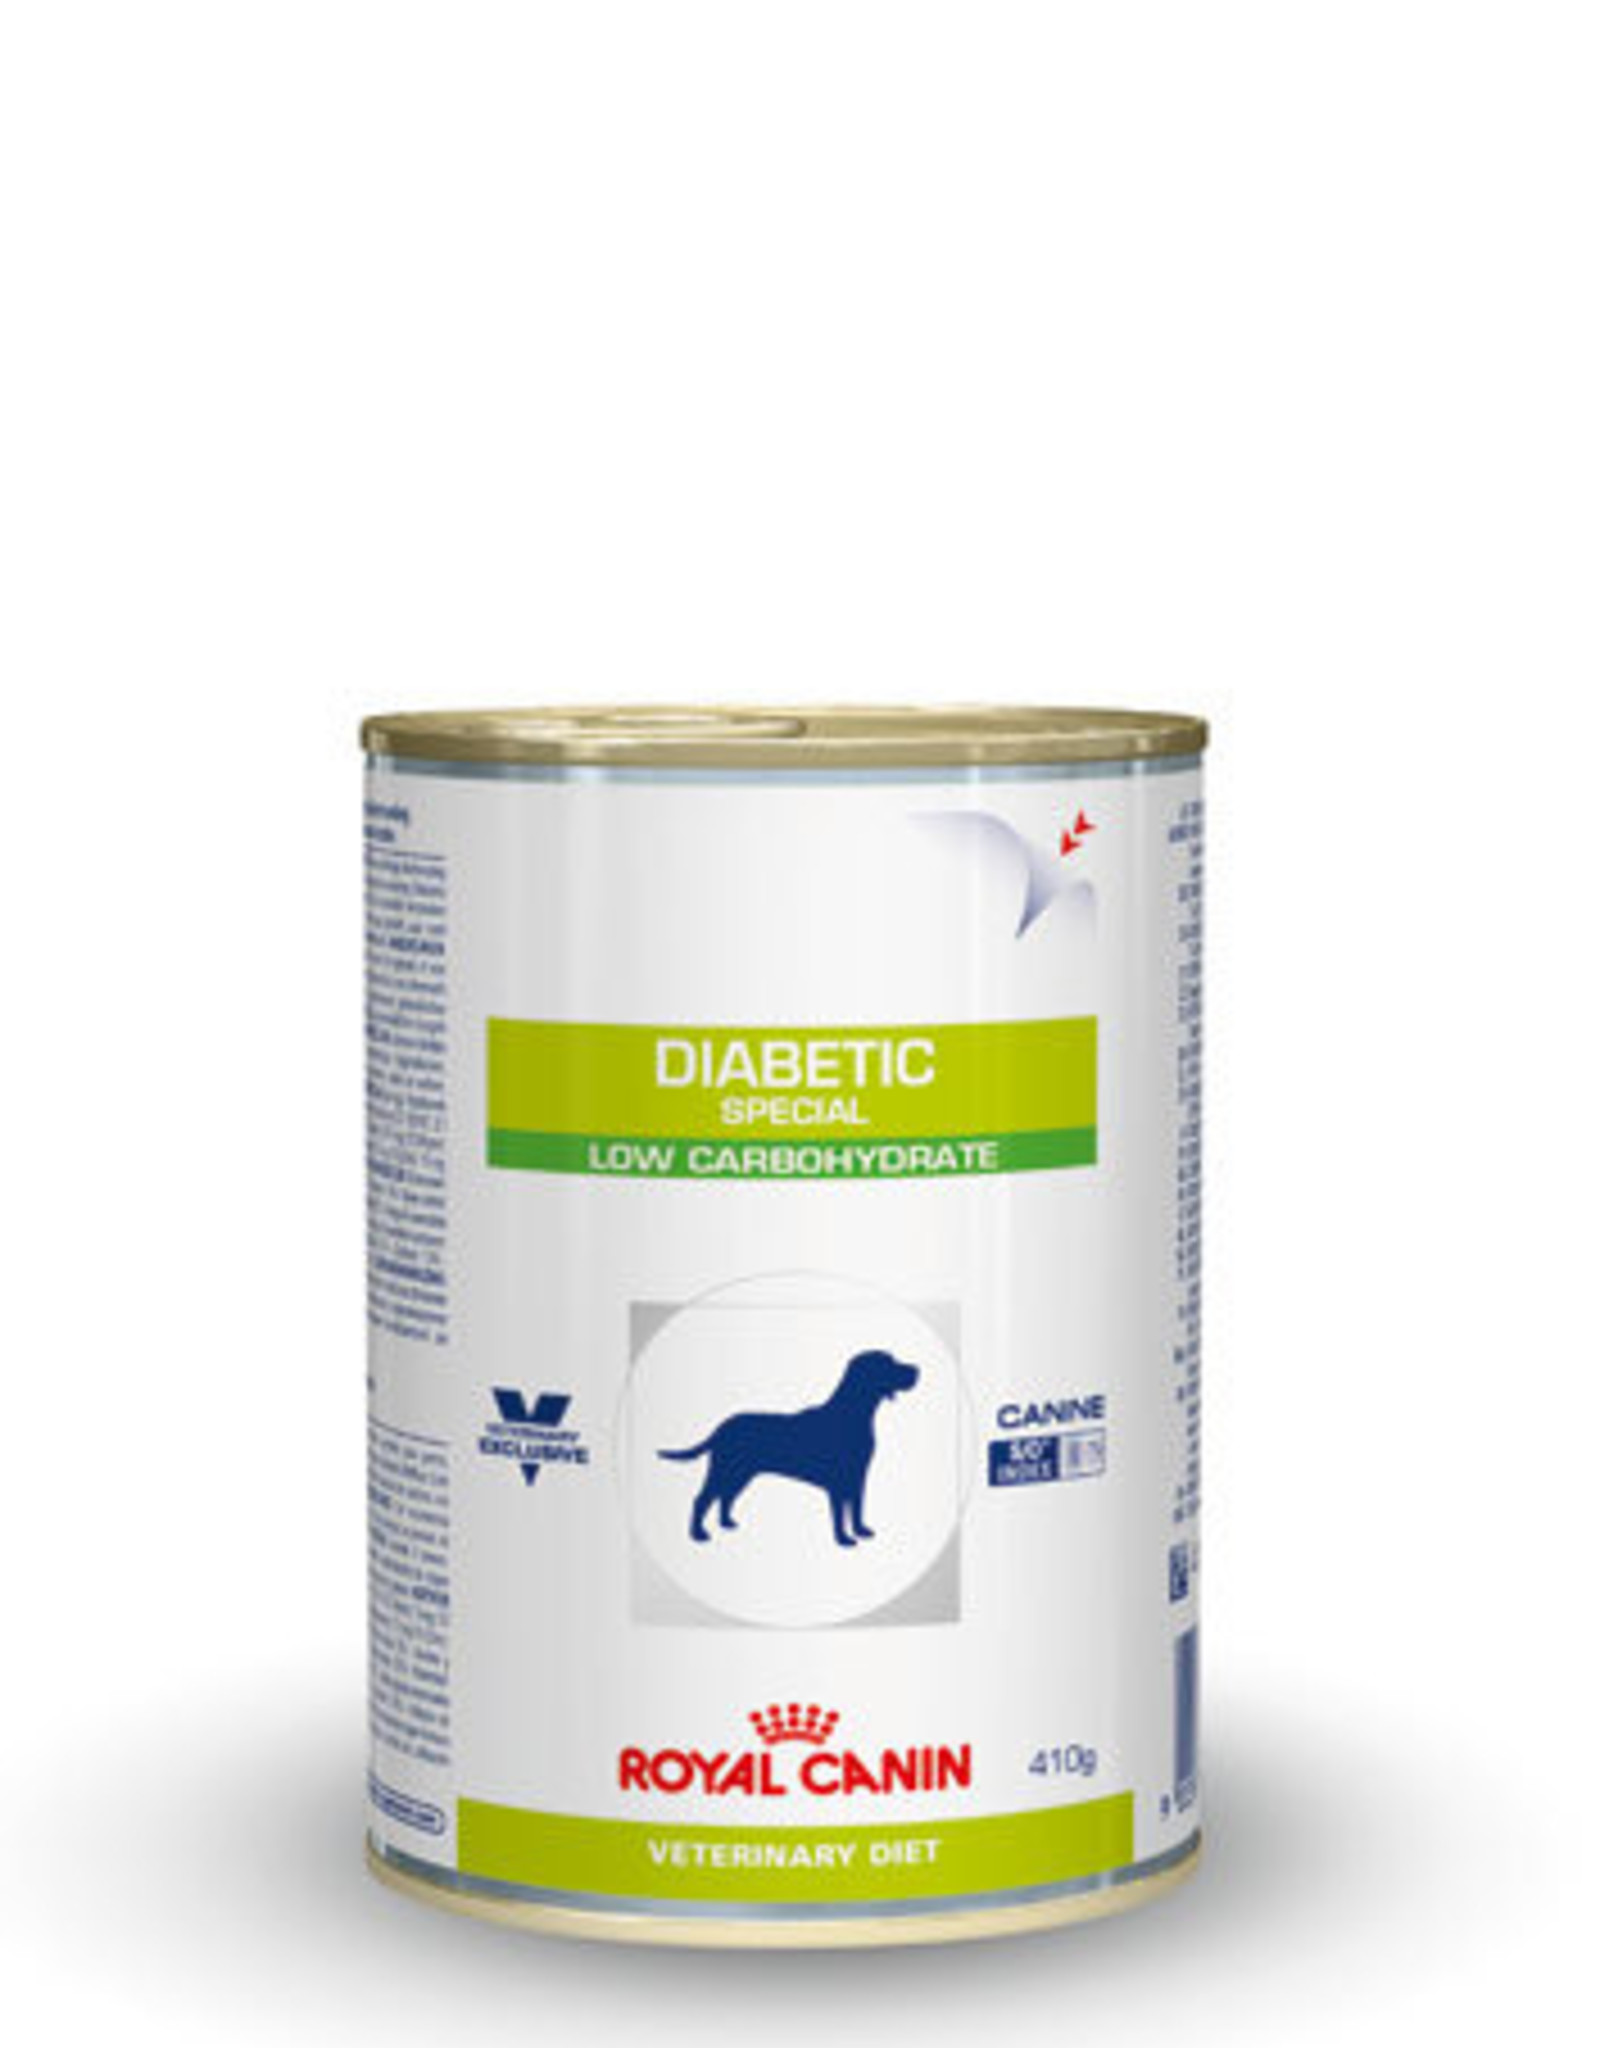 Royal Canin Royal Canin Vdiet Diabetic Low Carb Canine 12x195g